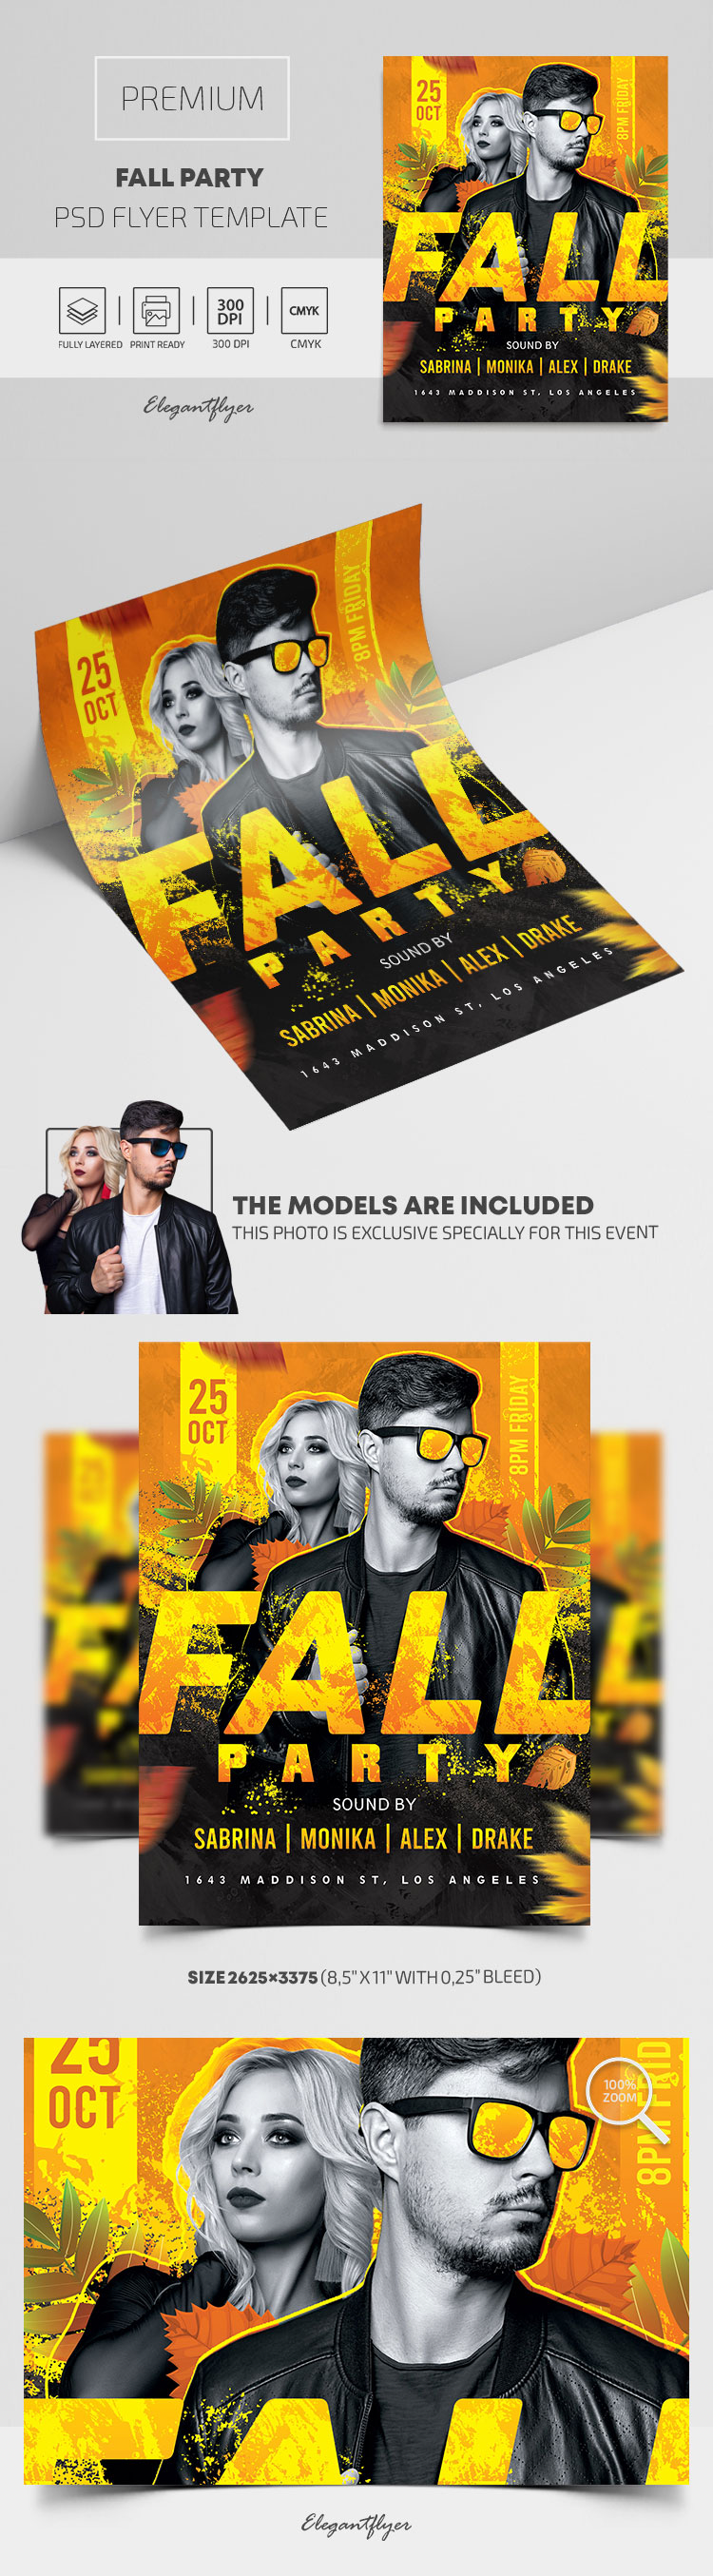 Fall Party – Premium PSD Flyer Template